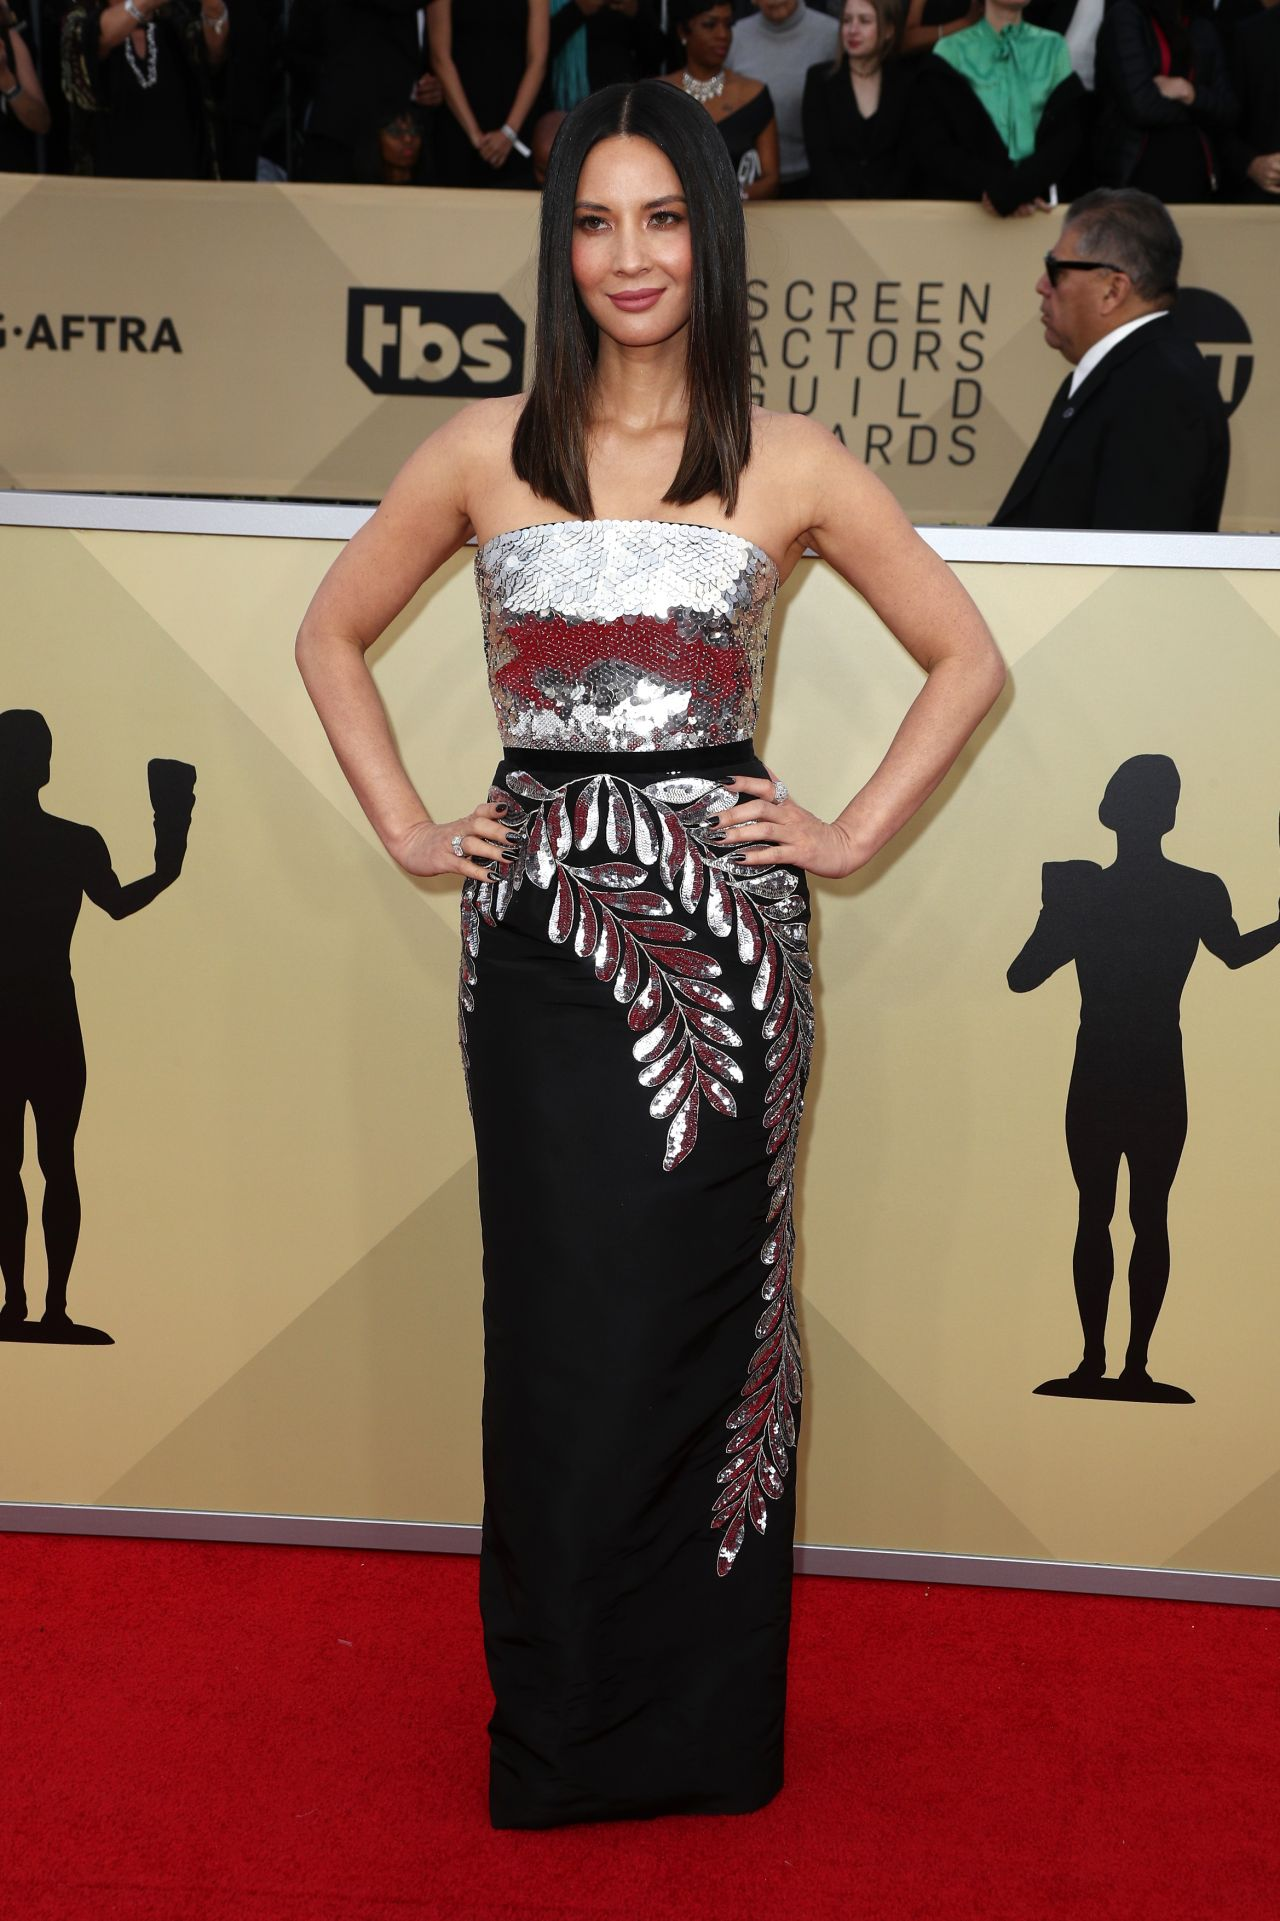 sag awards - photo #31